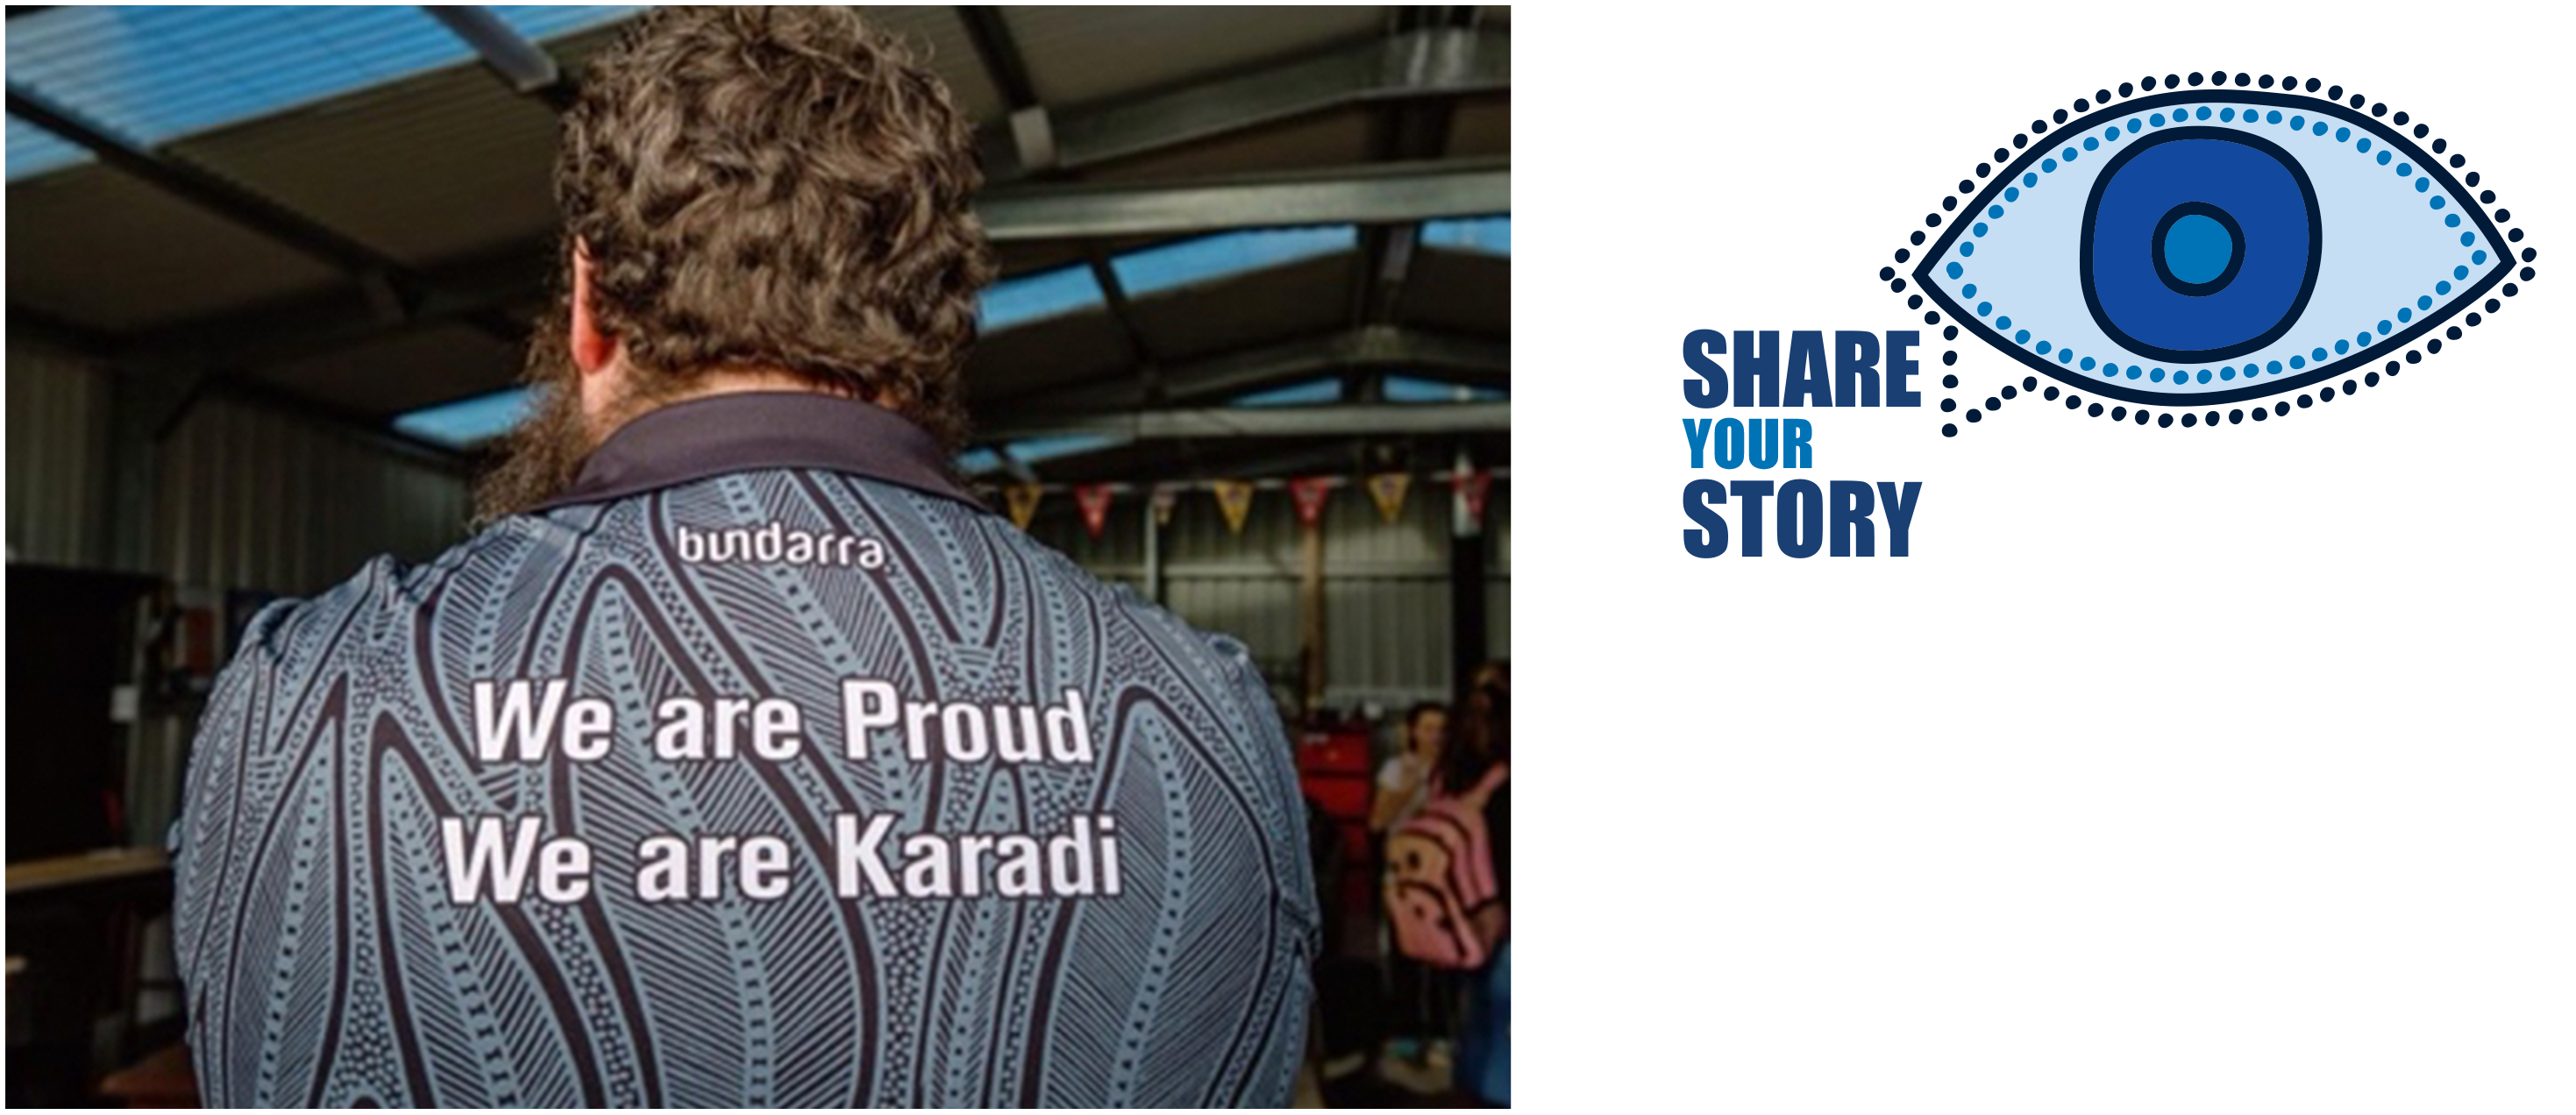 karadi share your story